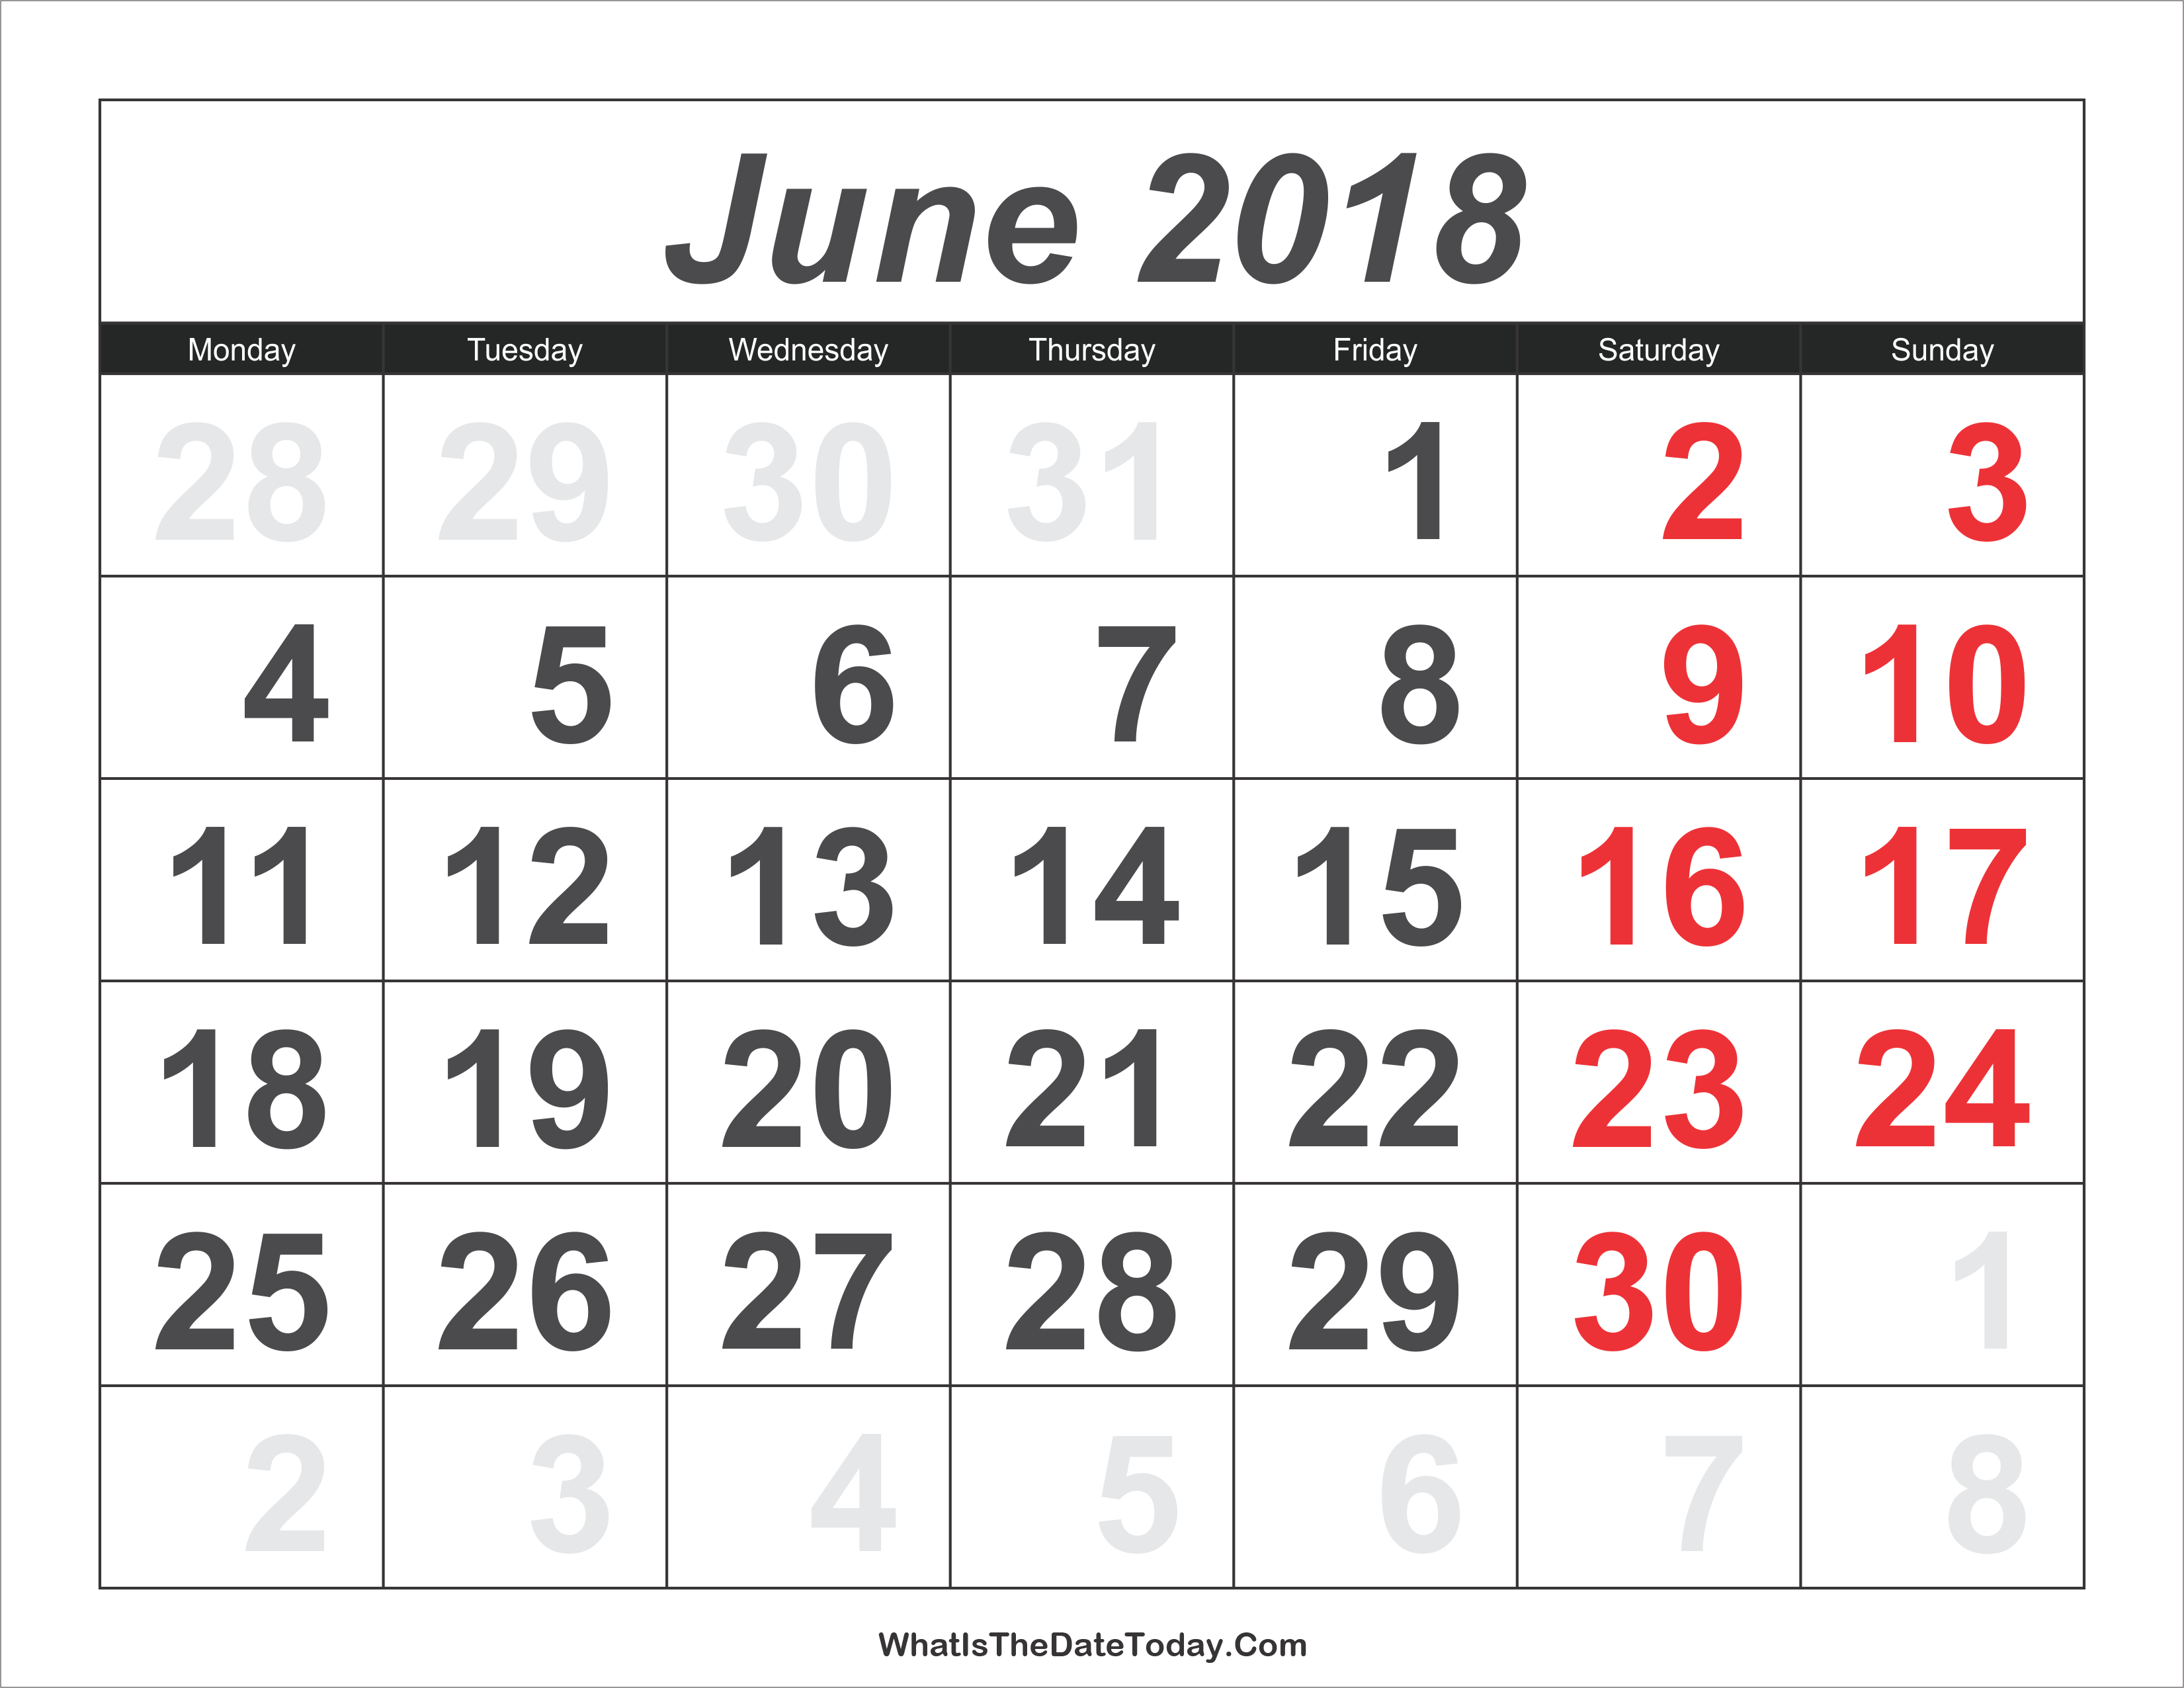 June 2018 Calendar Templates Whatisthedatetoday